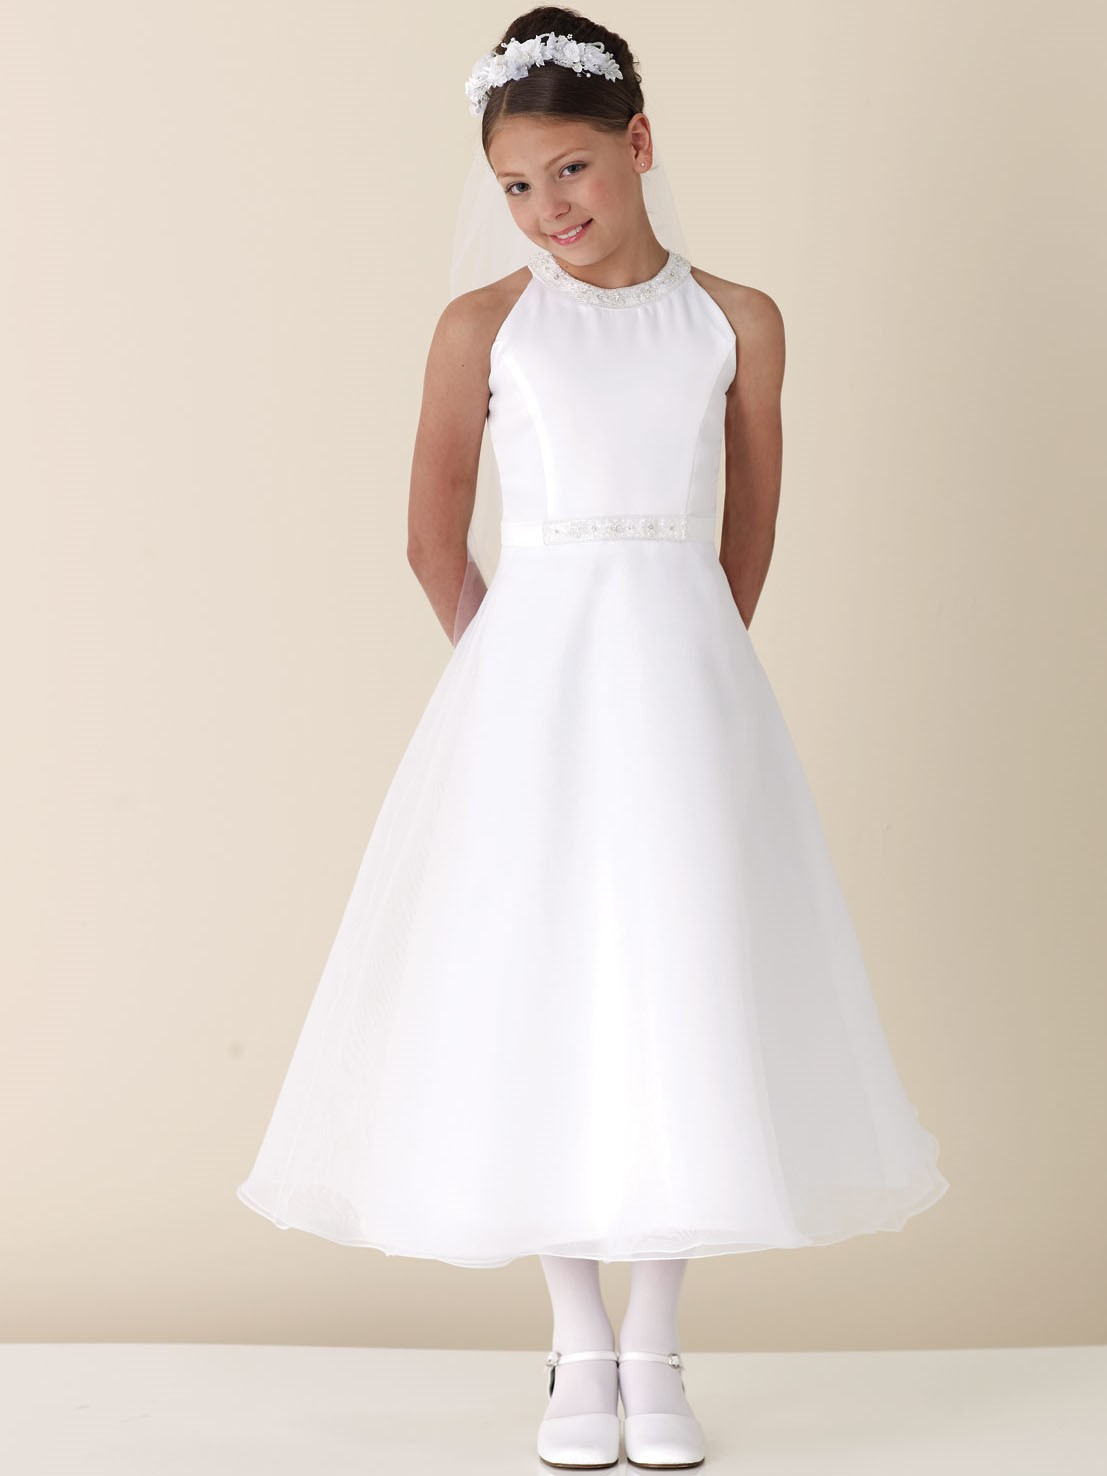 Affordable junior bridesmaid dresses wedding short dresses affordable junior bridesmaid dresses 36 ombrellifo Images